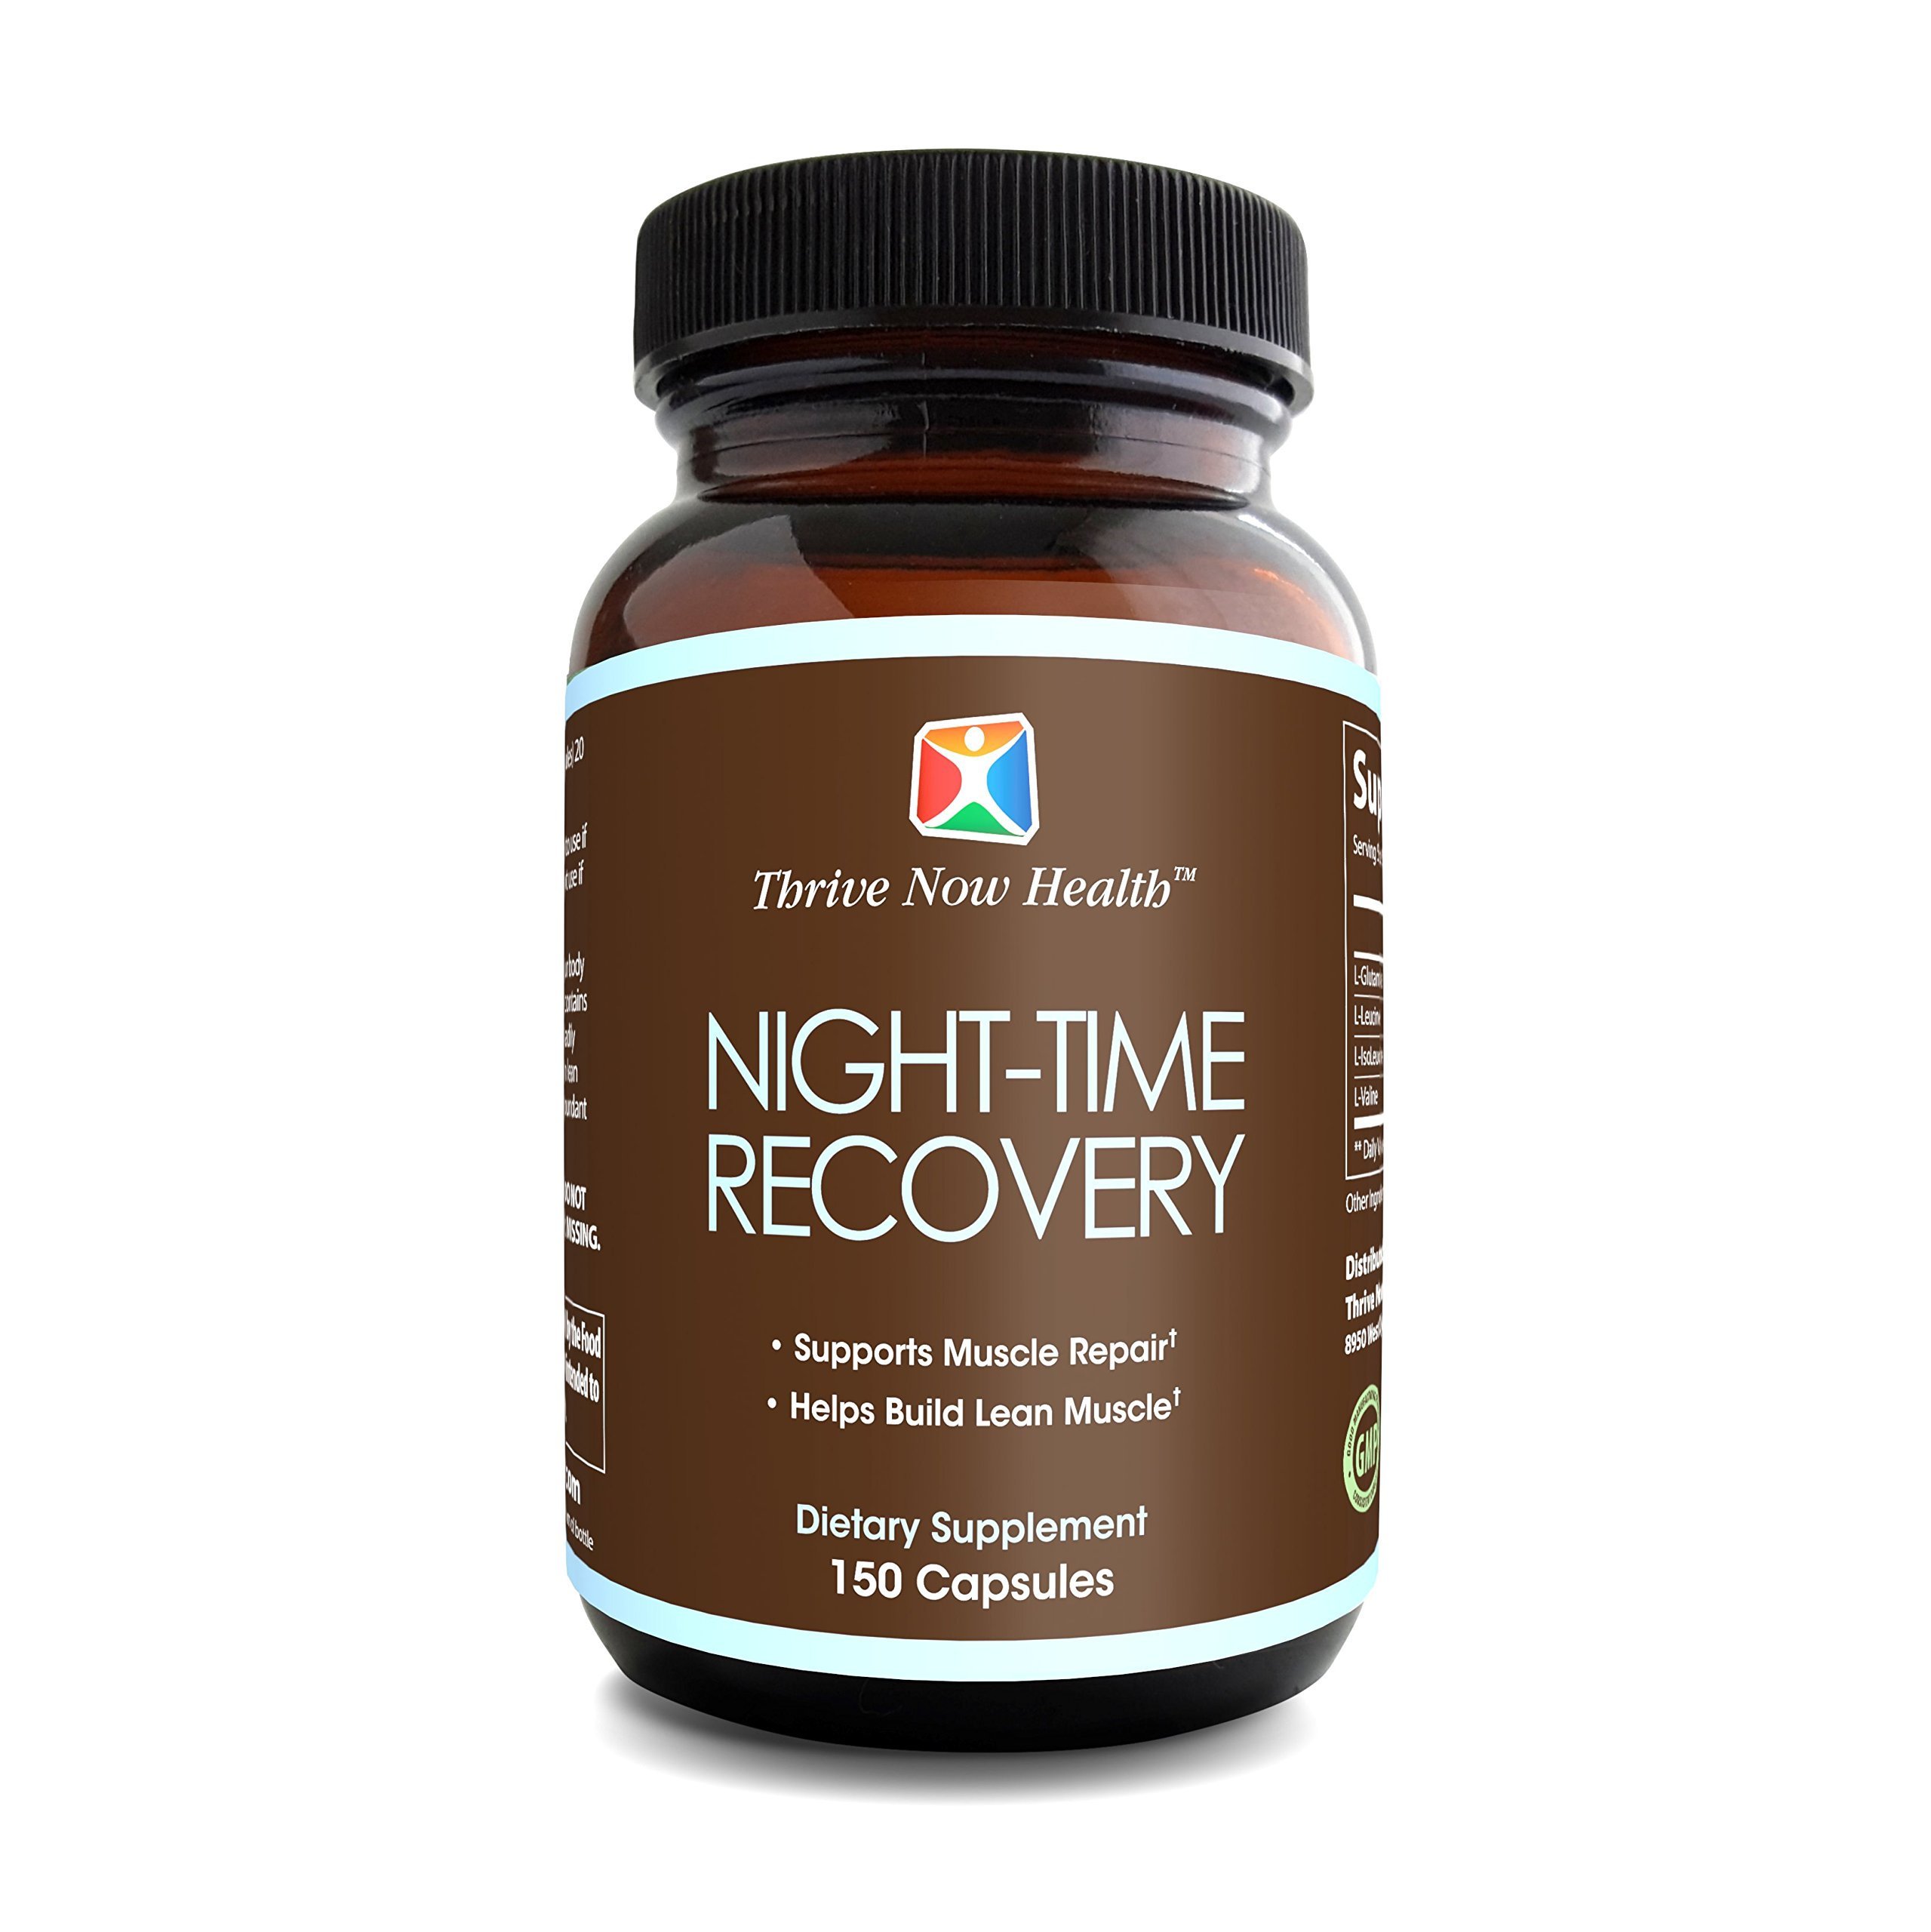 Thrive Now Health Night-Time Recovery (150 Capsules) Post Workout Supplement | Muscle Builder w/ BCAAs, L-Glutamine | Supports Lean Mass, Advanced Growth, Stamina